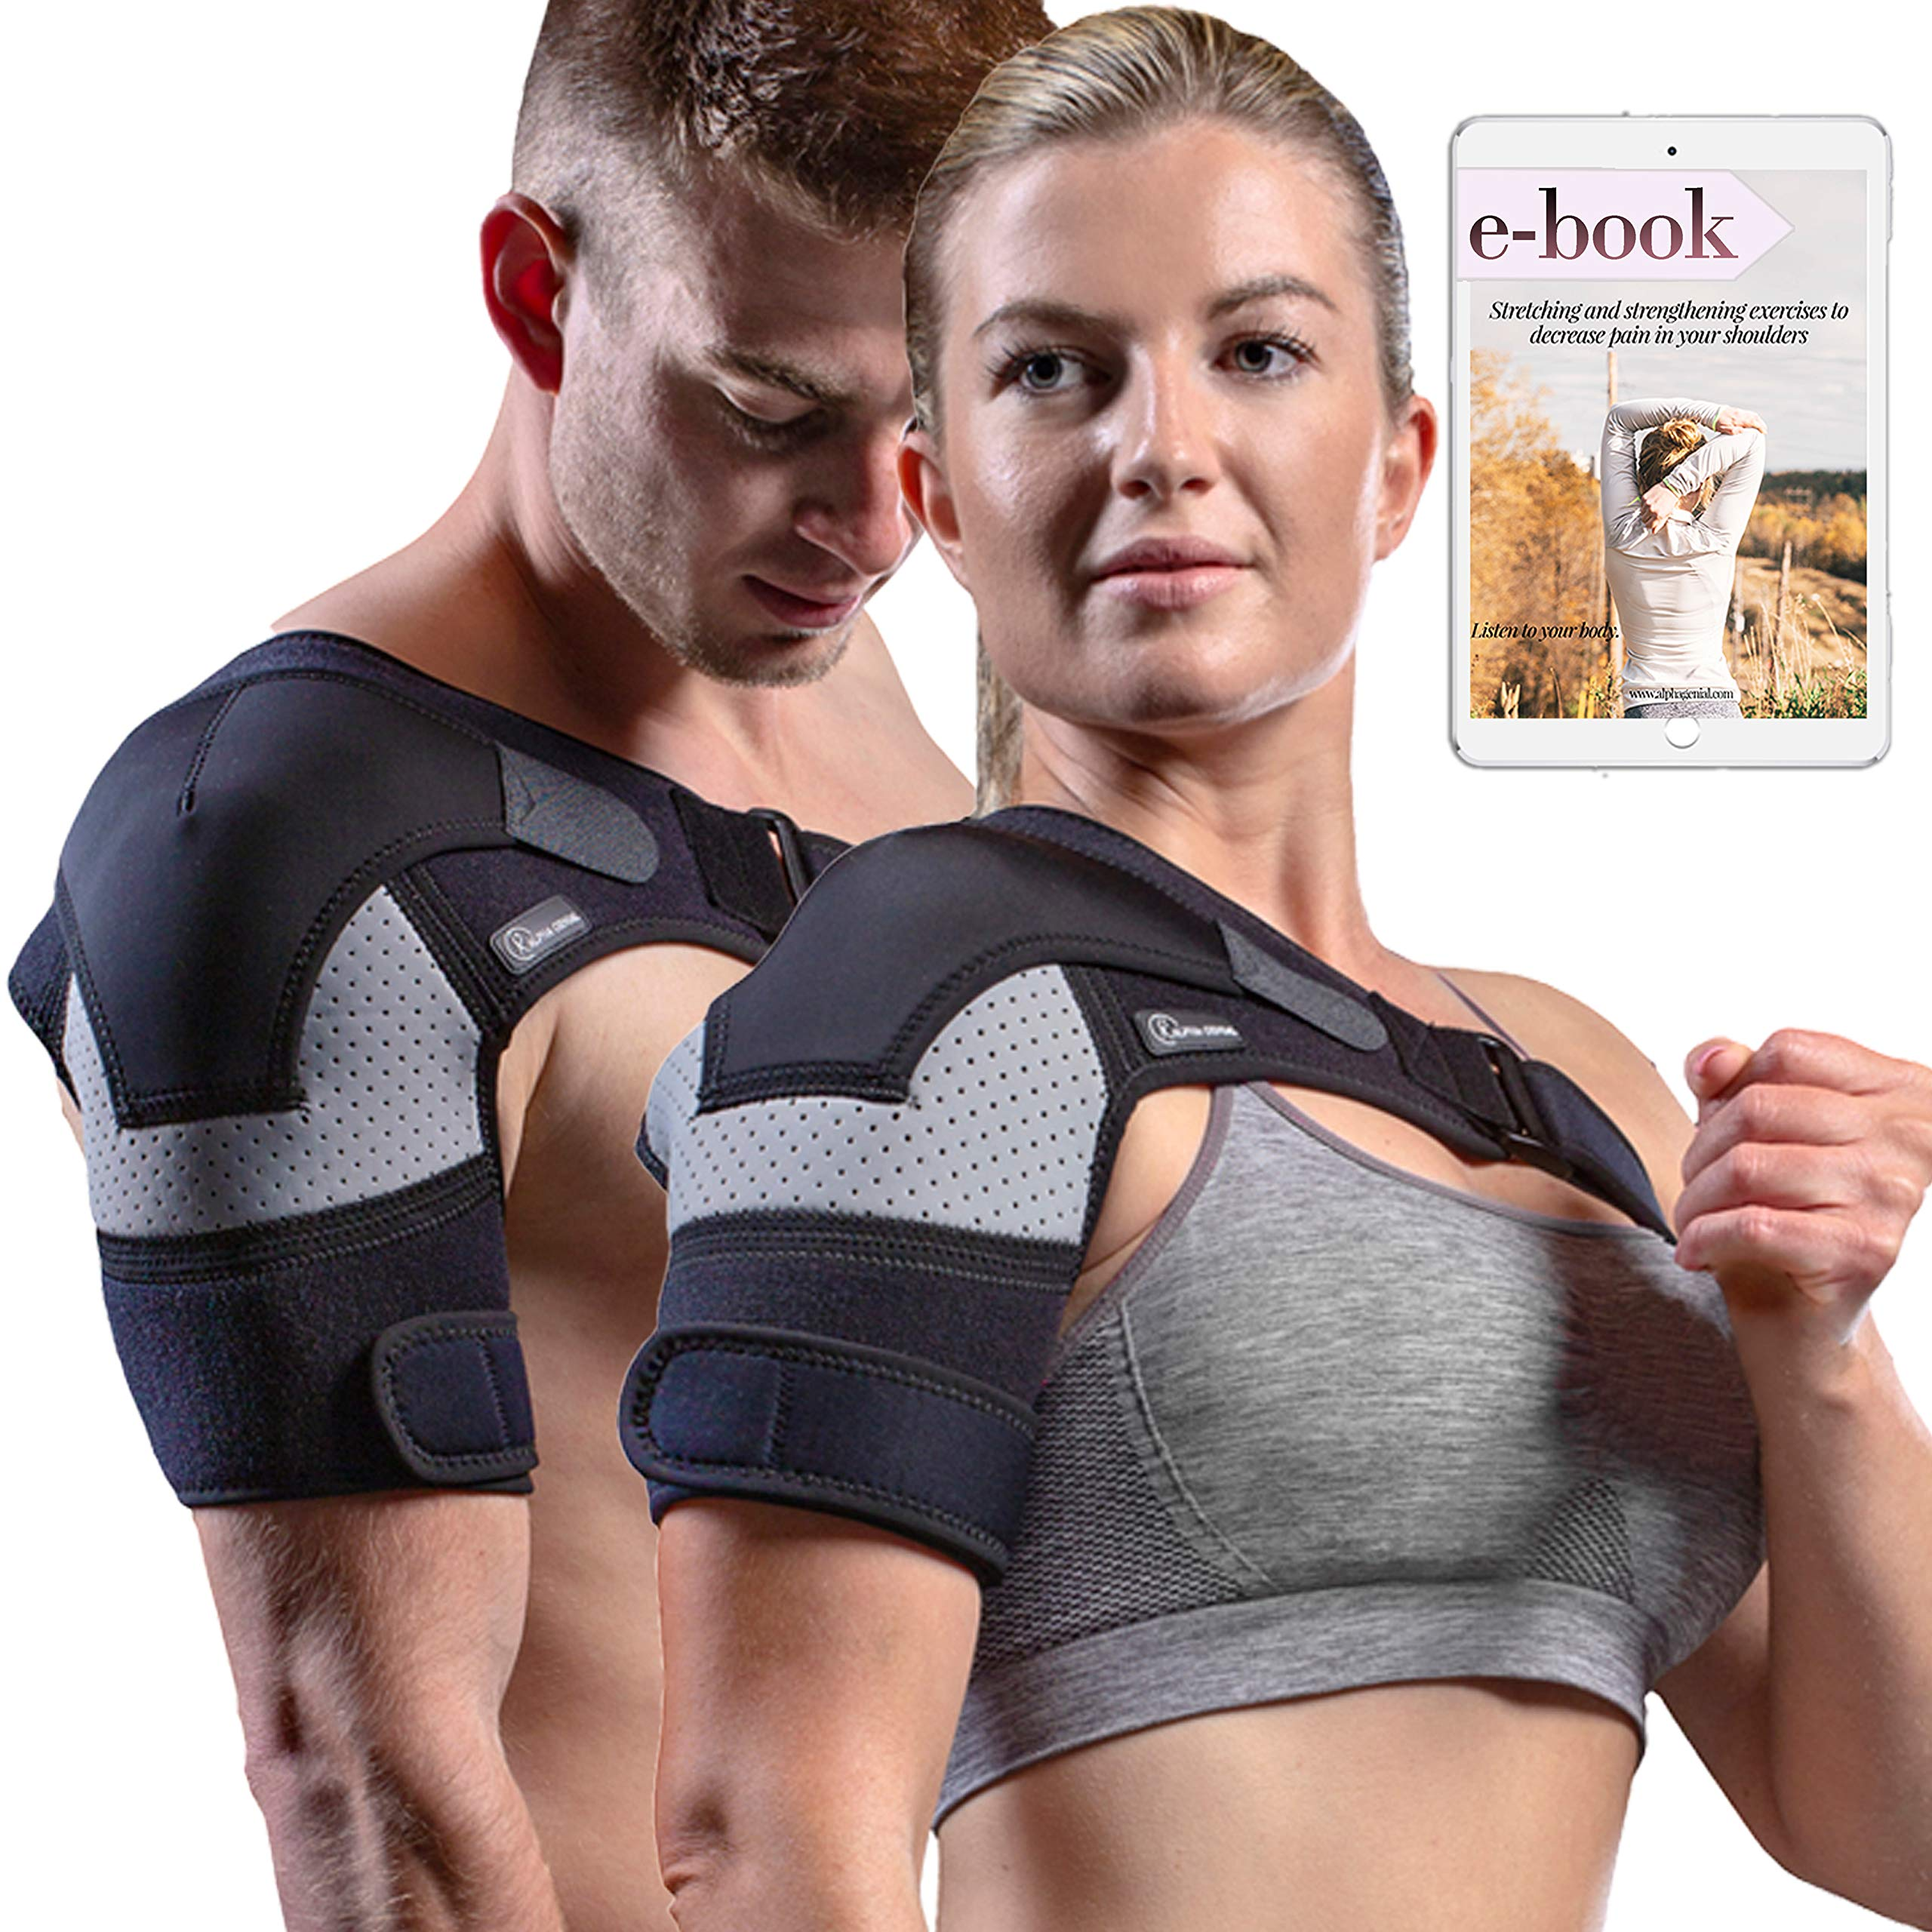 Shoulder Brace - Rotator Cuff Pain Relief Support for Men and Women, with Adjustable Belt and Sleeve, Pressure Pad for hot or ice Pack for Shoulder Impingement Syndrome, Tendonitis, Arthritis